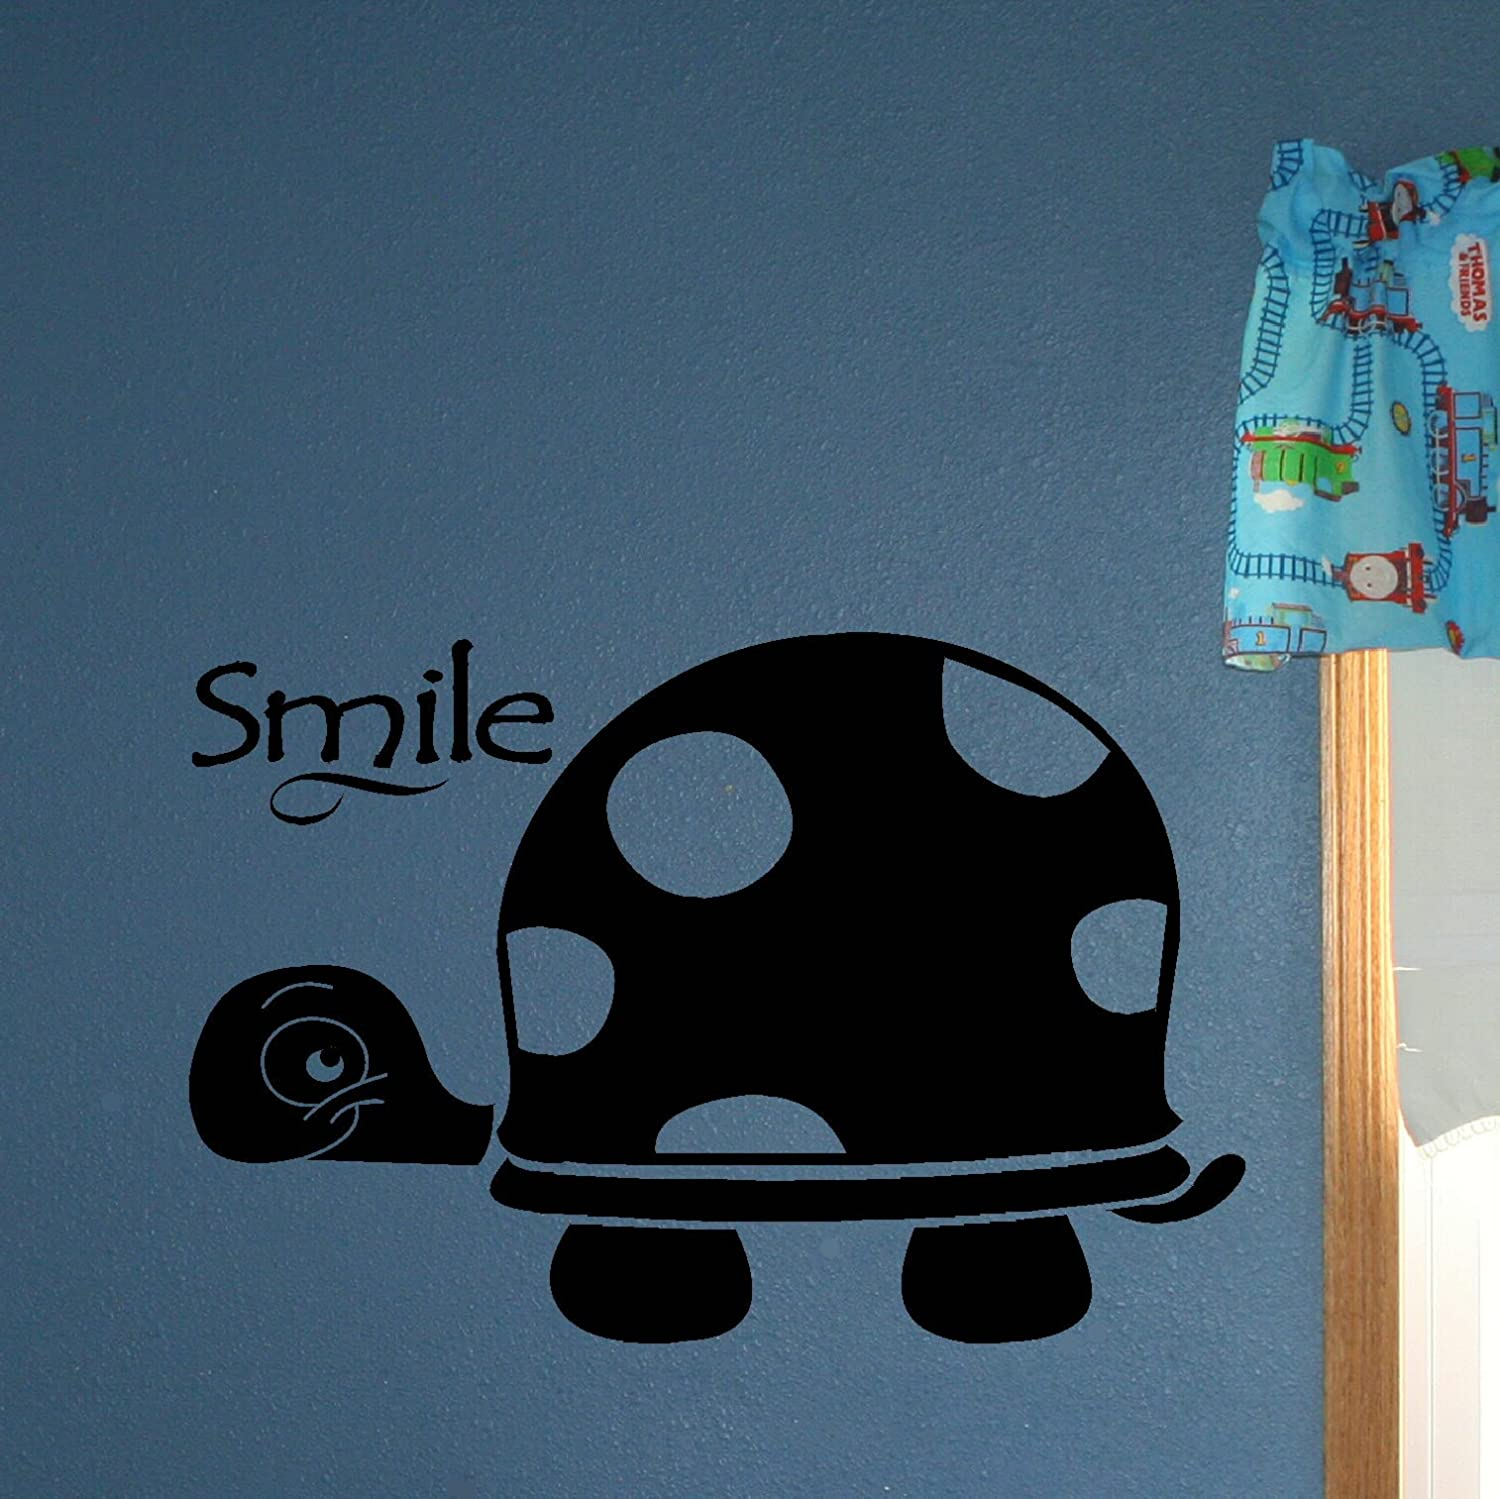 Storm Gray Wall Decor Plus More WDPM2518 Smile Turtle Boys Wall Sticker for Room Decoration 23x15.5-Inch